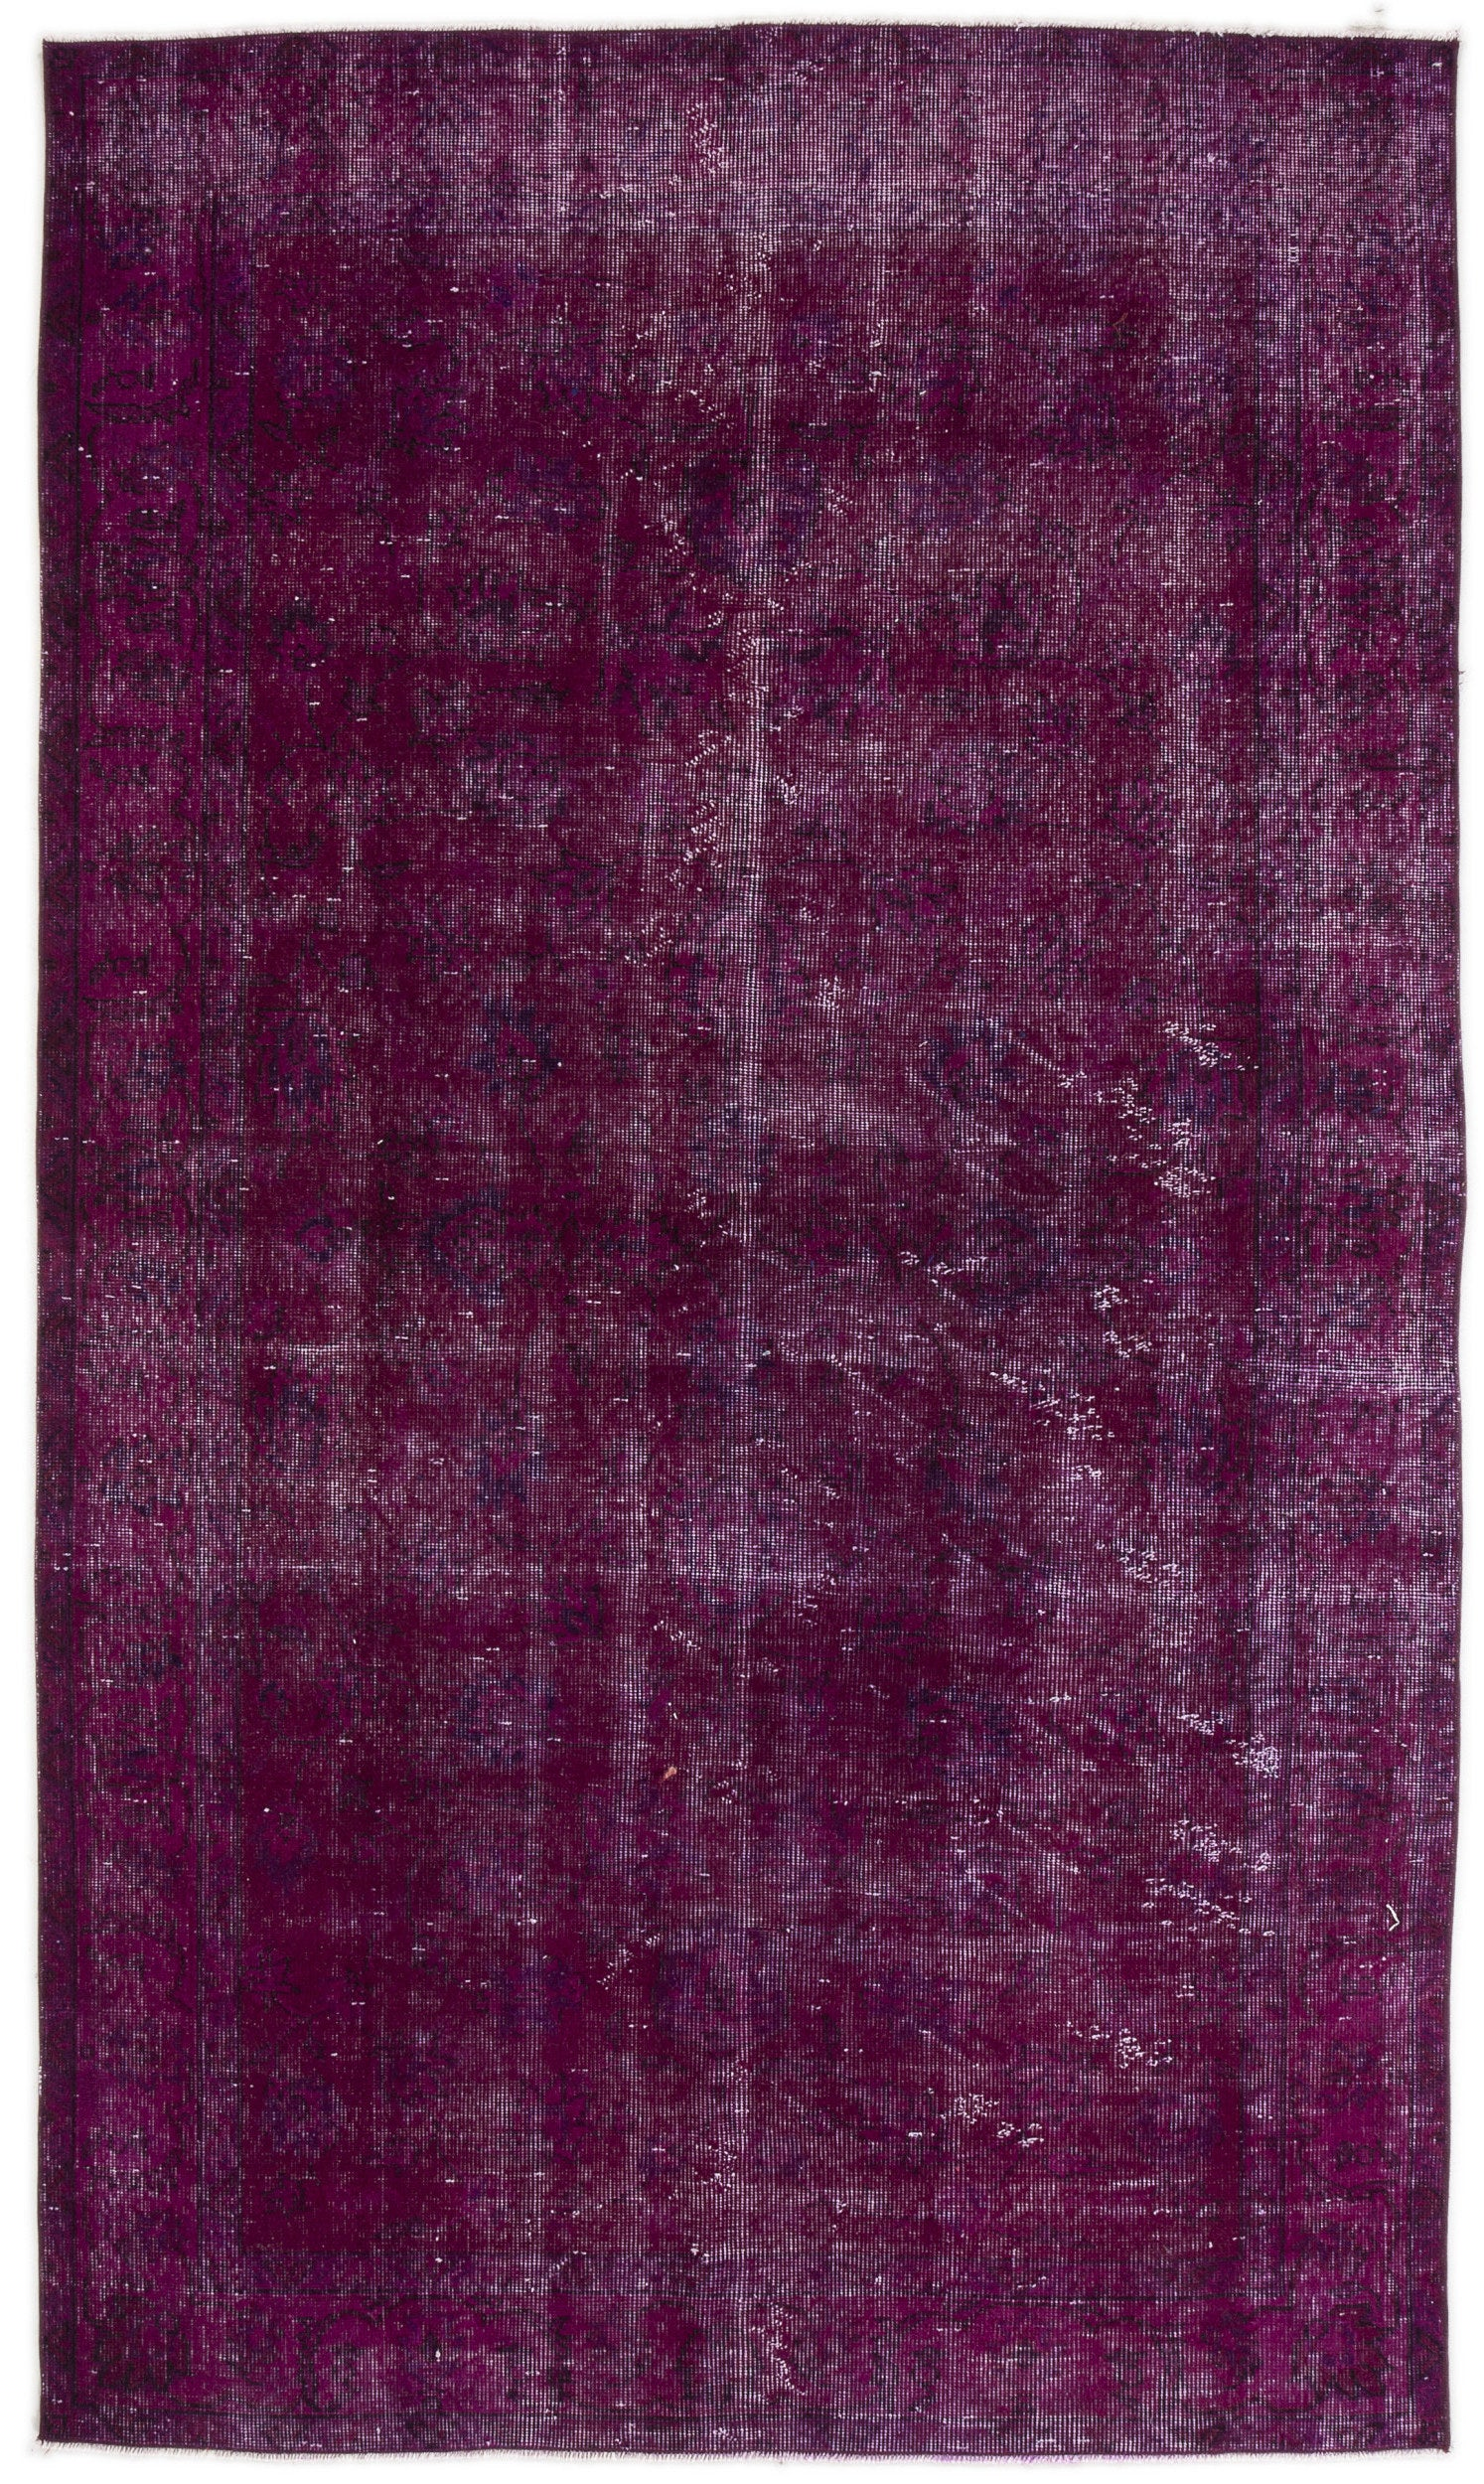 Fuchsia Over Dyed Vintage Rug 4'7'' x 7'11'' ft 140 x 242 cm